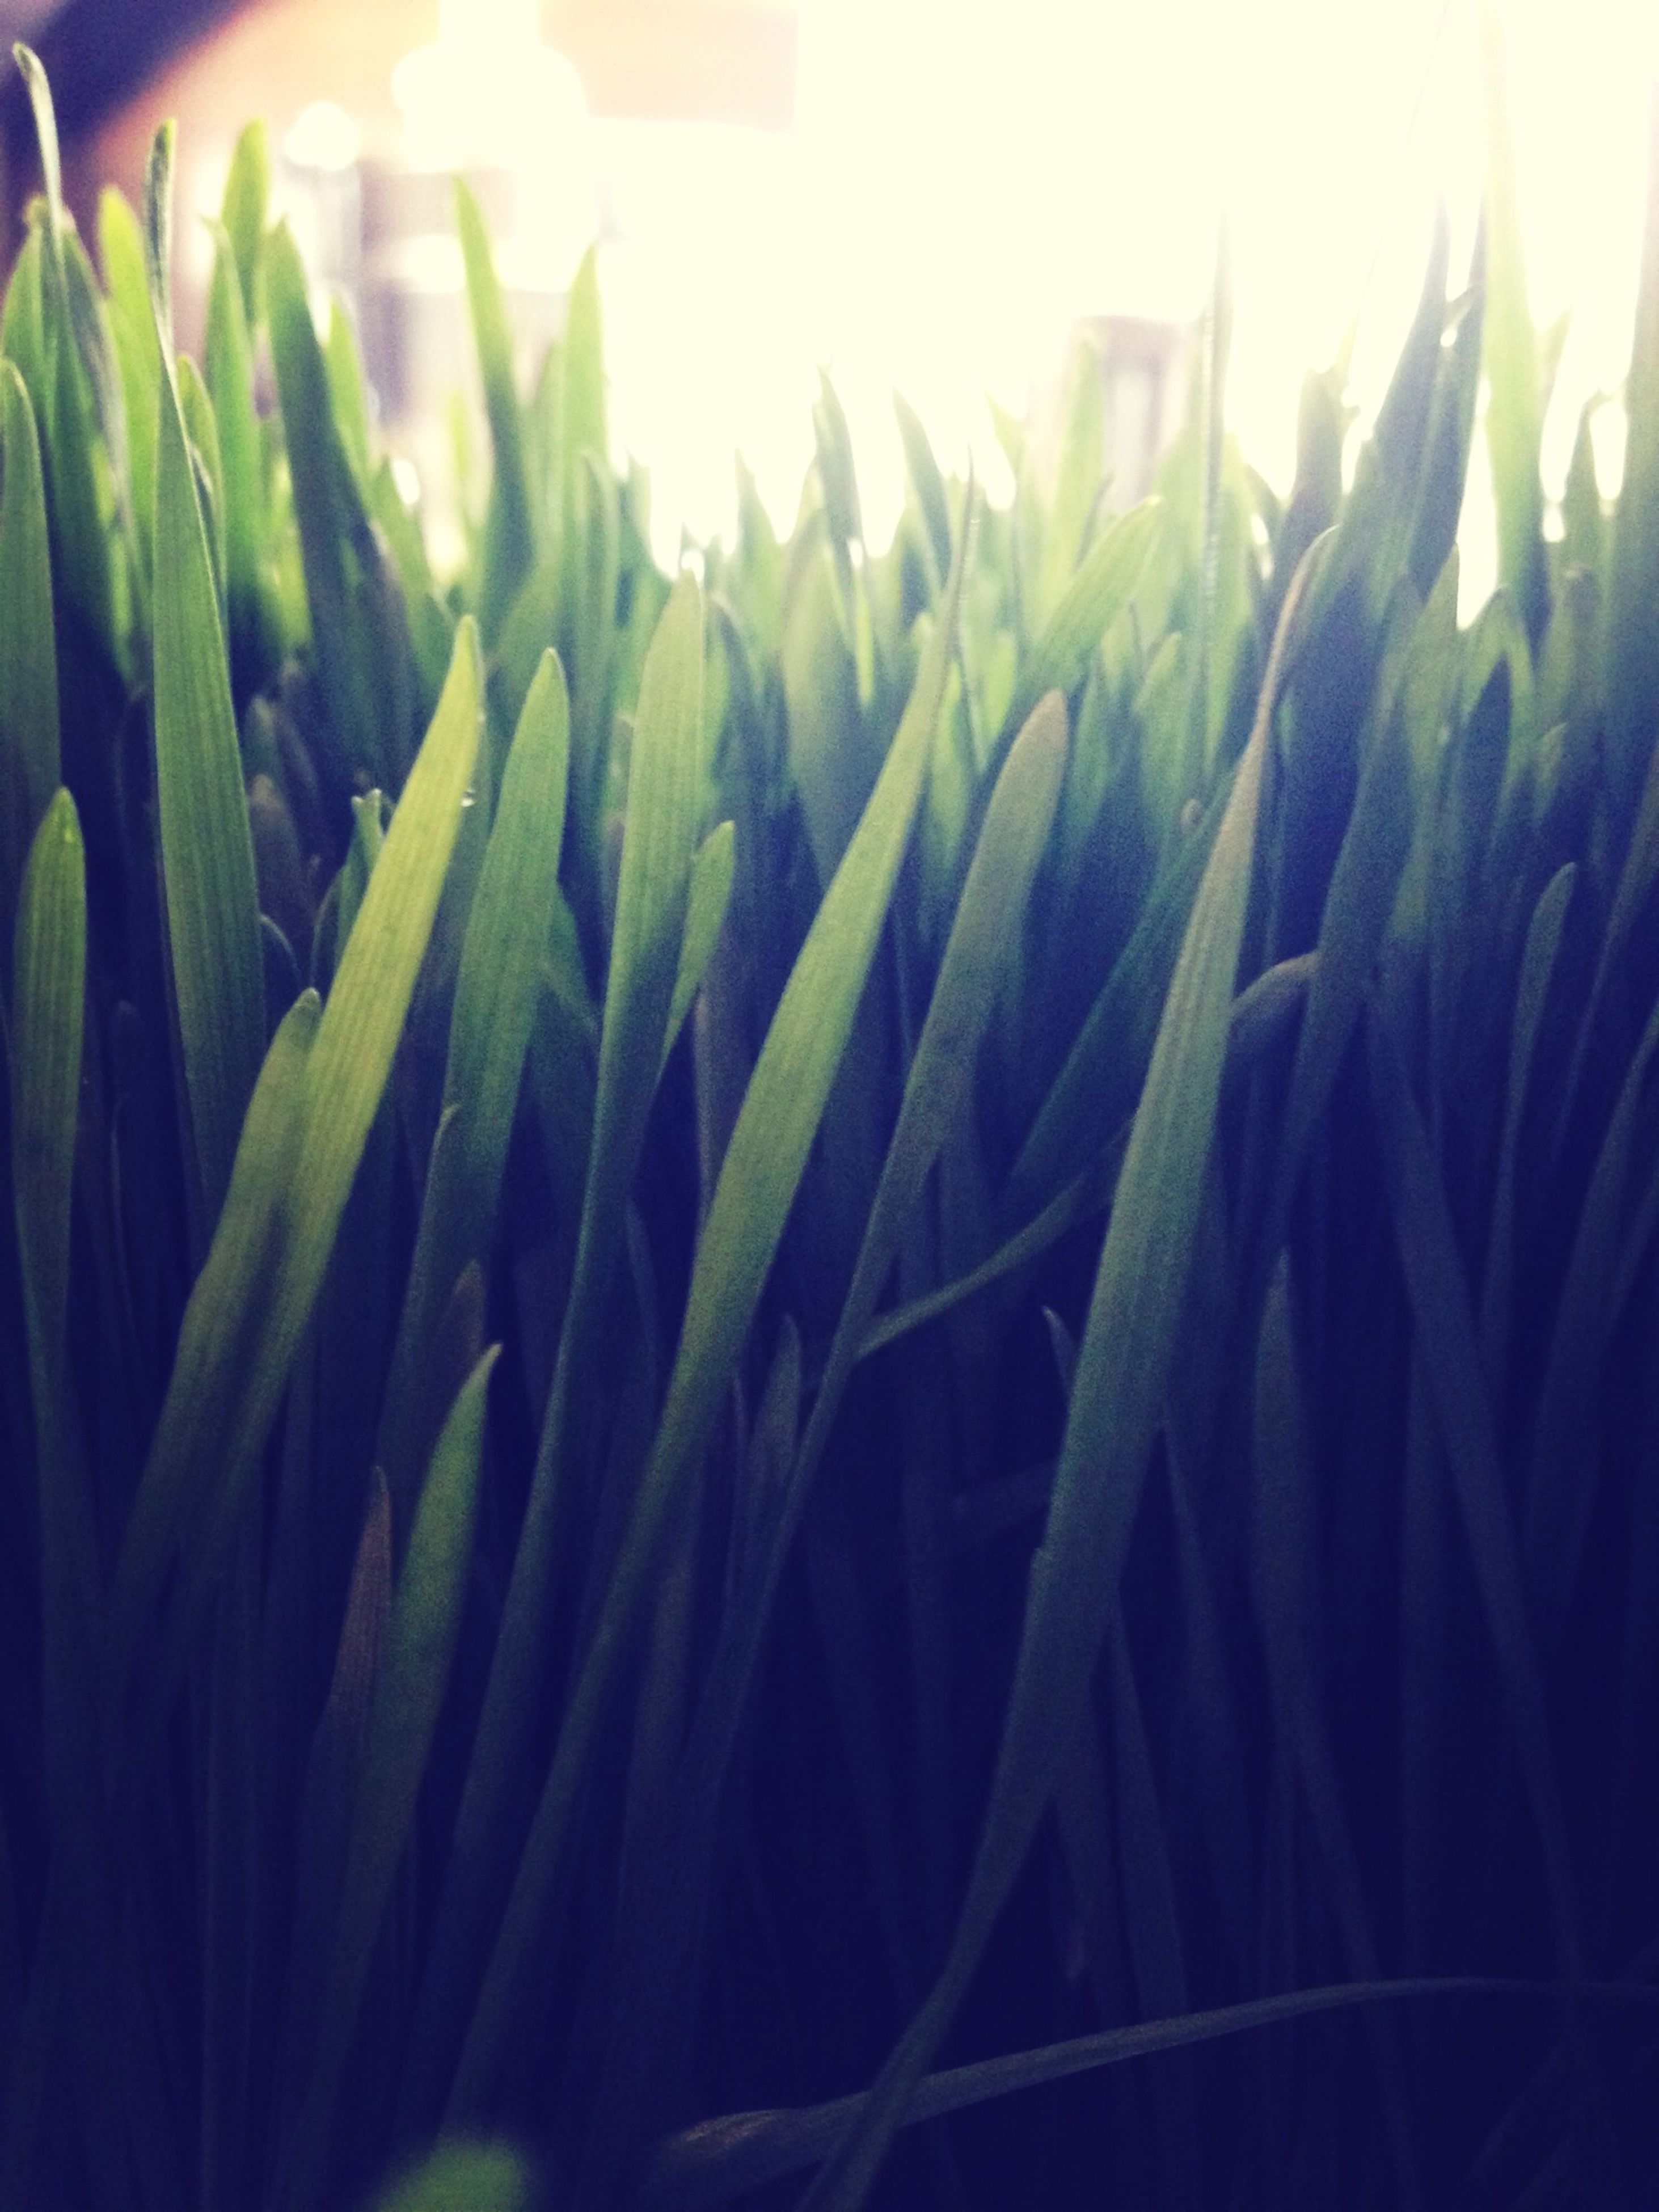 green color, close-up, growth, leaf, plant, nature, selective focus, focus on foreground, sunlight, beauty in nature, no people, green, outdoors, tranquility, freshness, field, day, lens flare, growing, detail